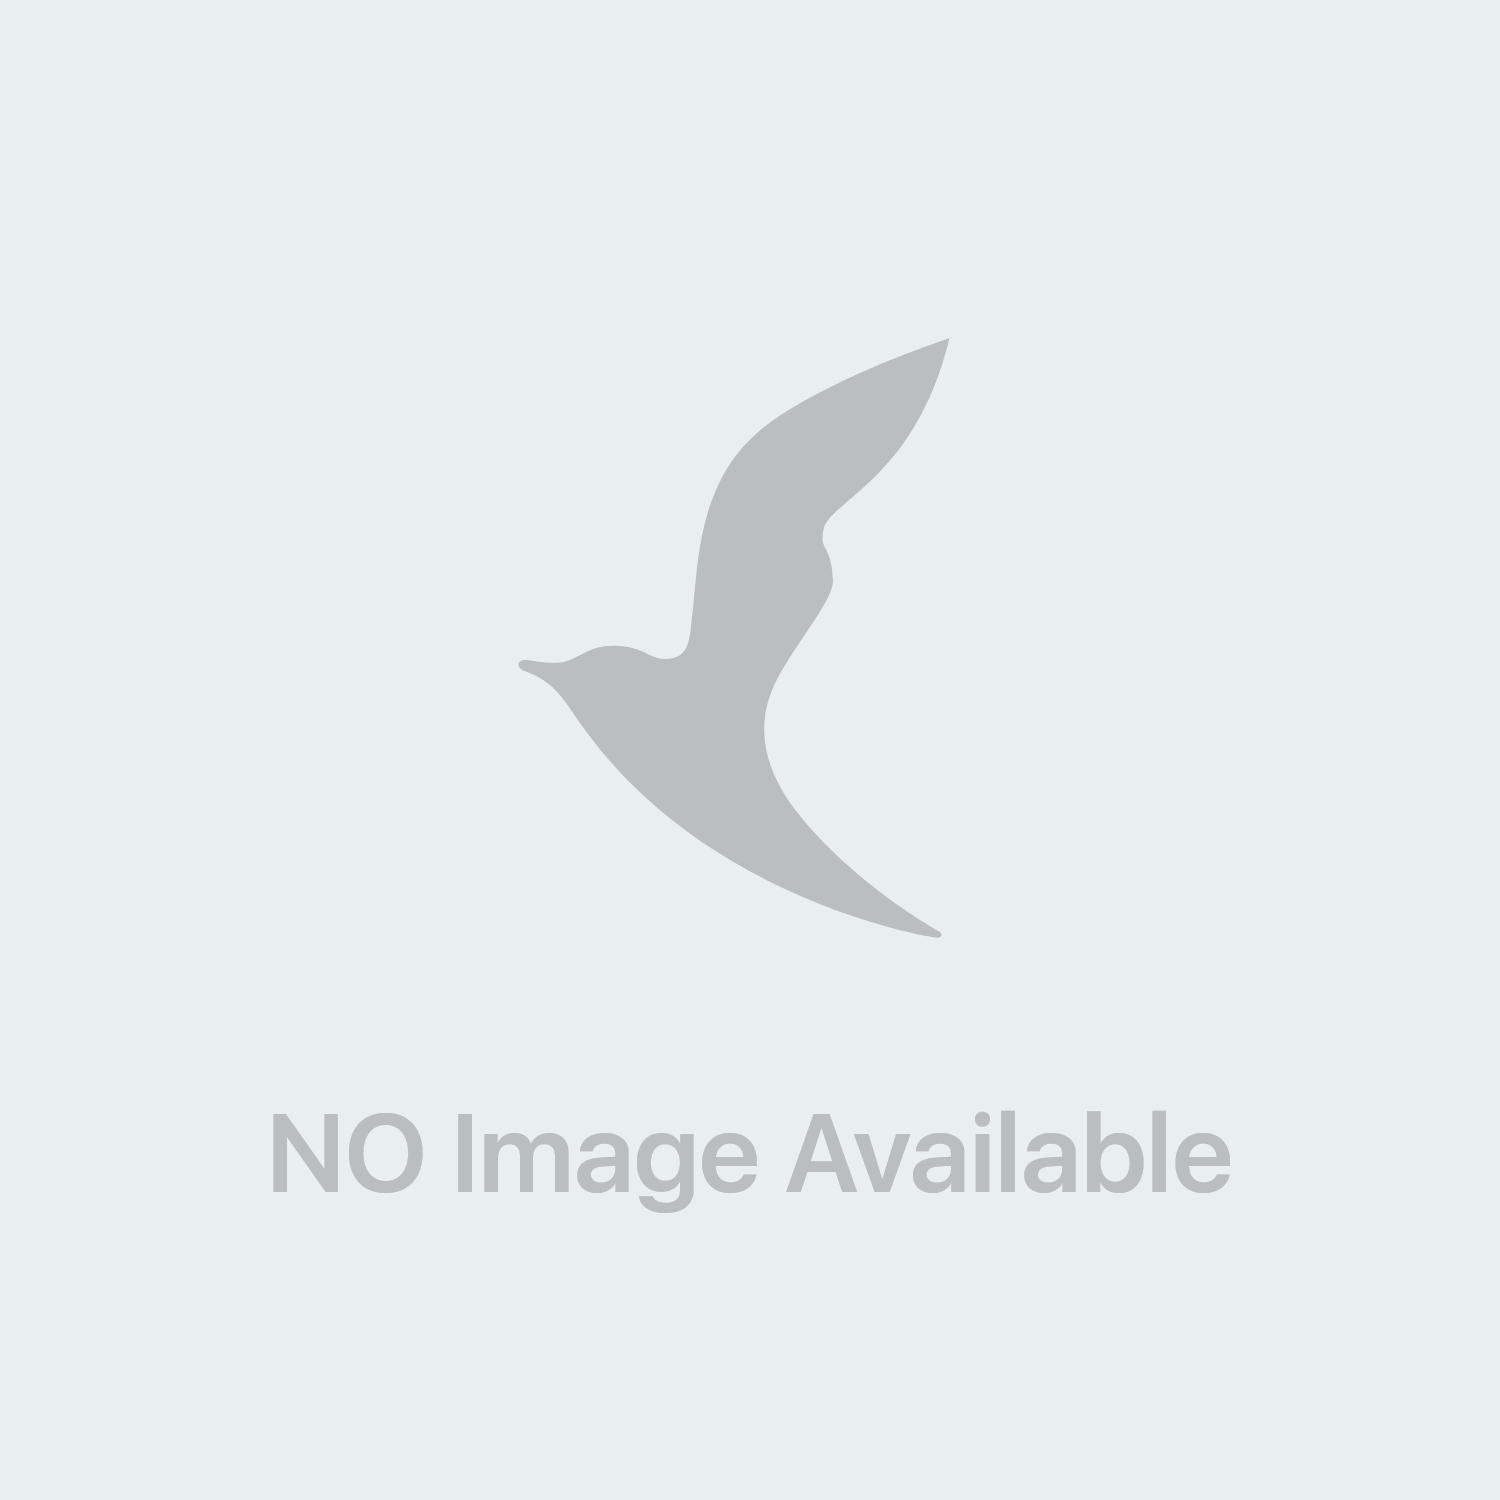 Avene Acqua Termale Deodorante Roll On 50 Ml